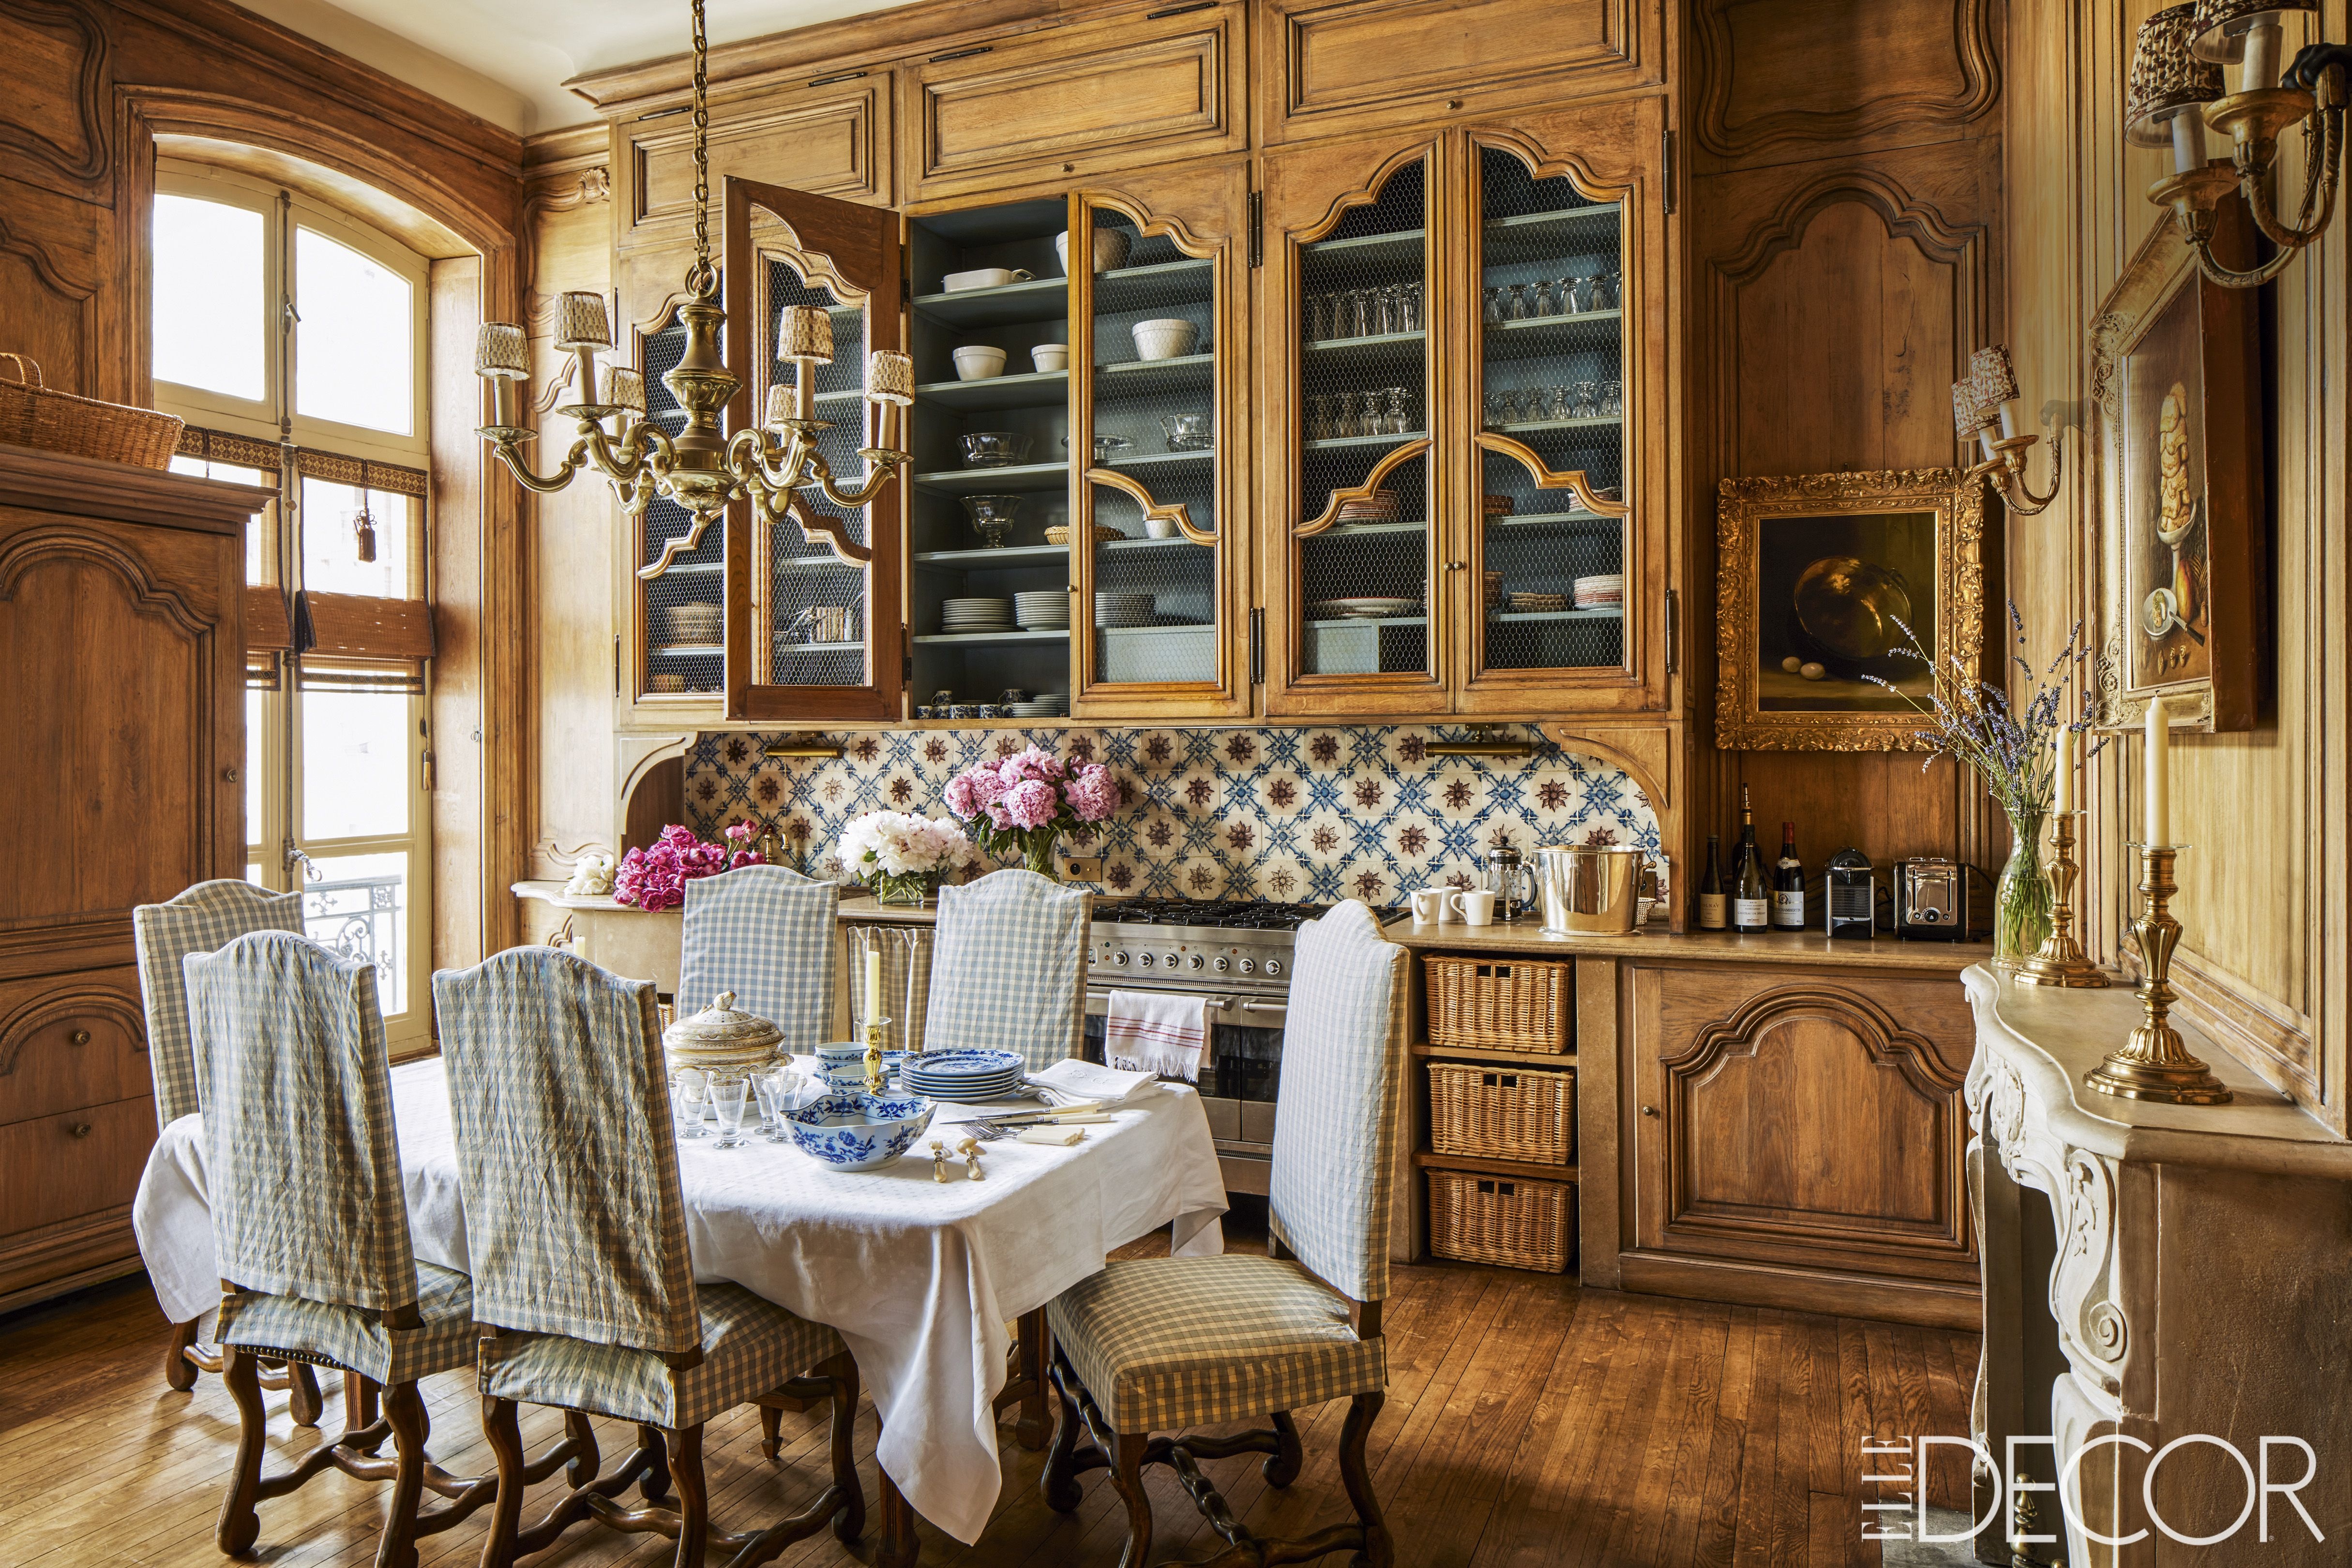 french country style interiors rooms with french country decor rh elledecor com Facebook Design House Decor Design Office House